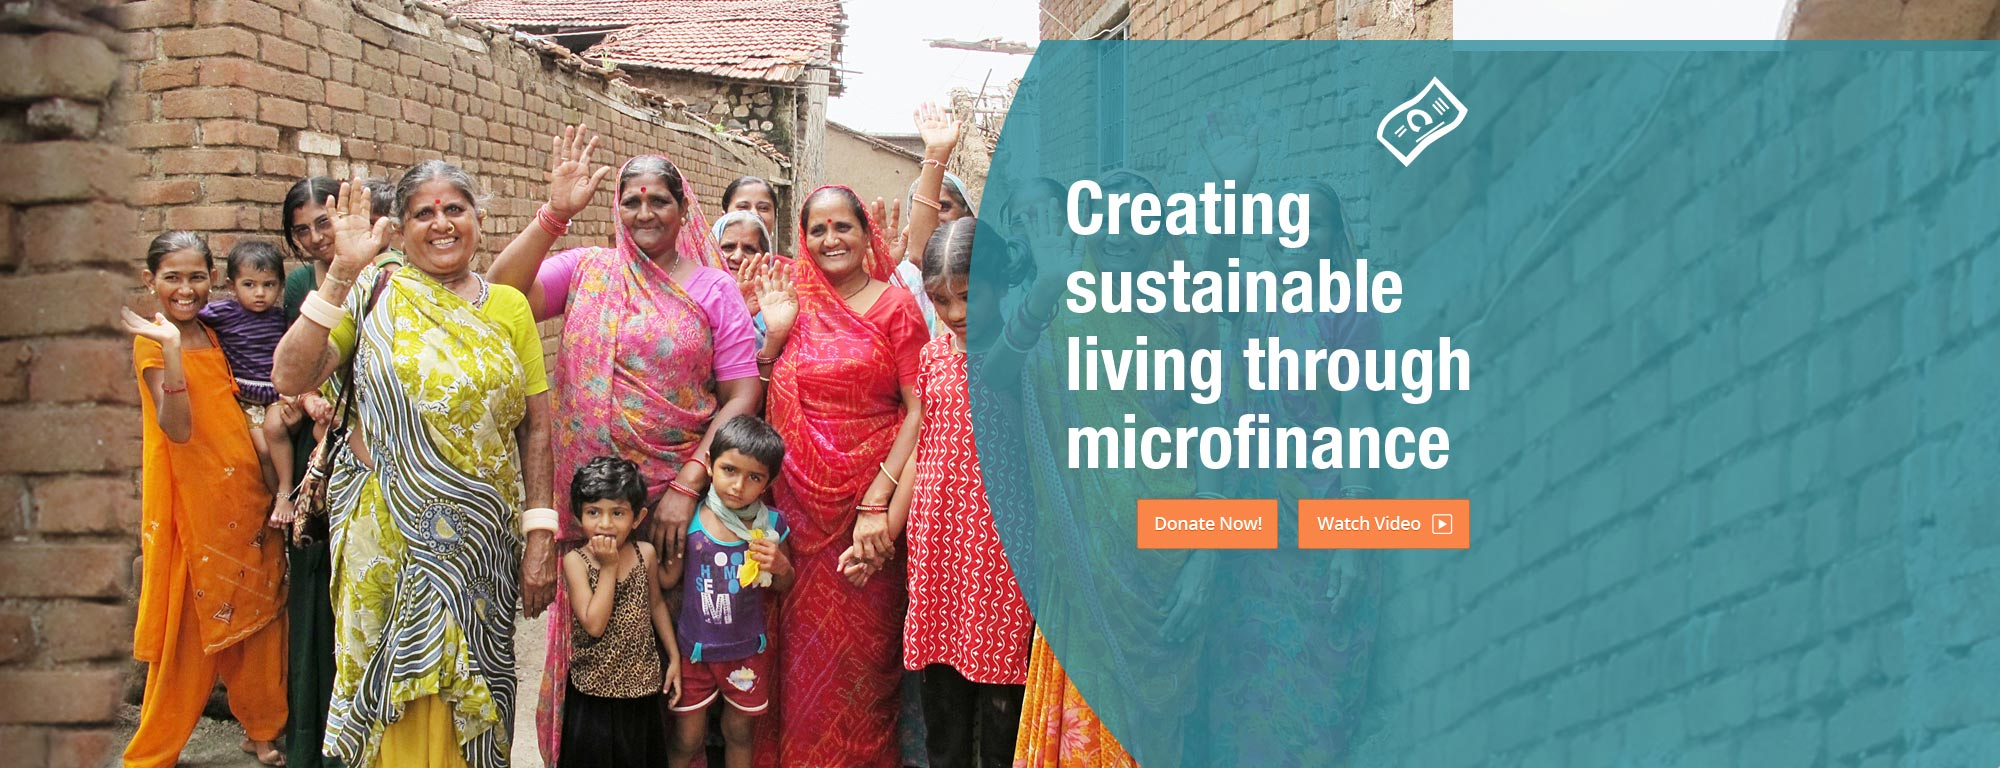 Creating sustainable living through microfinance